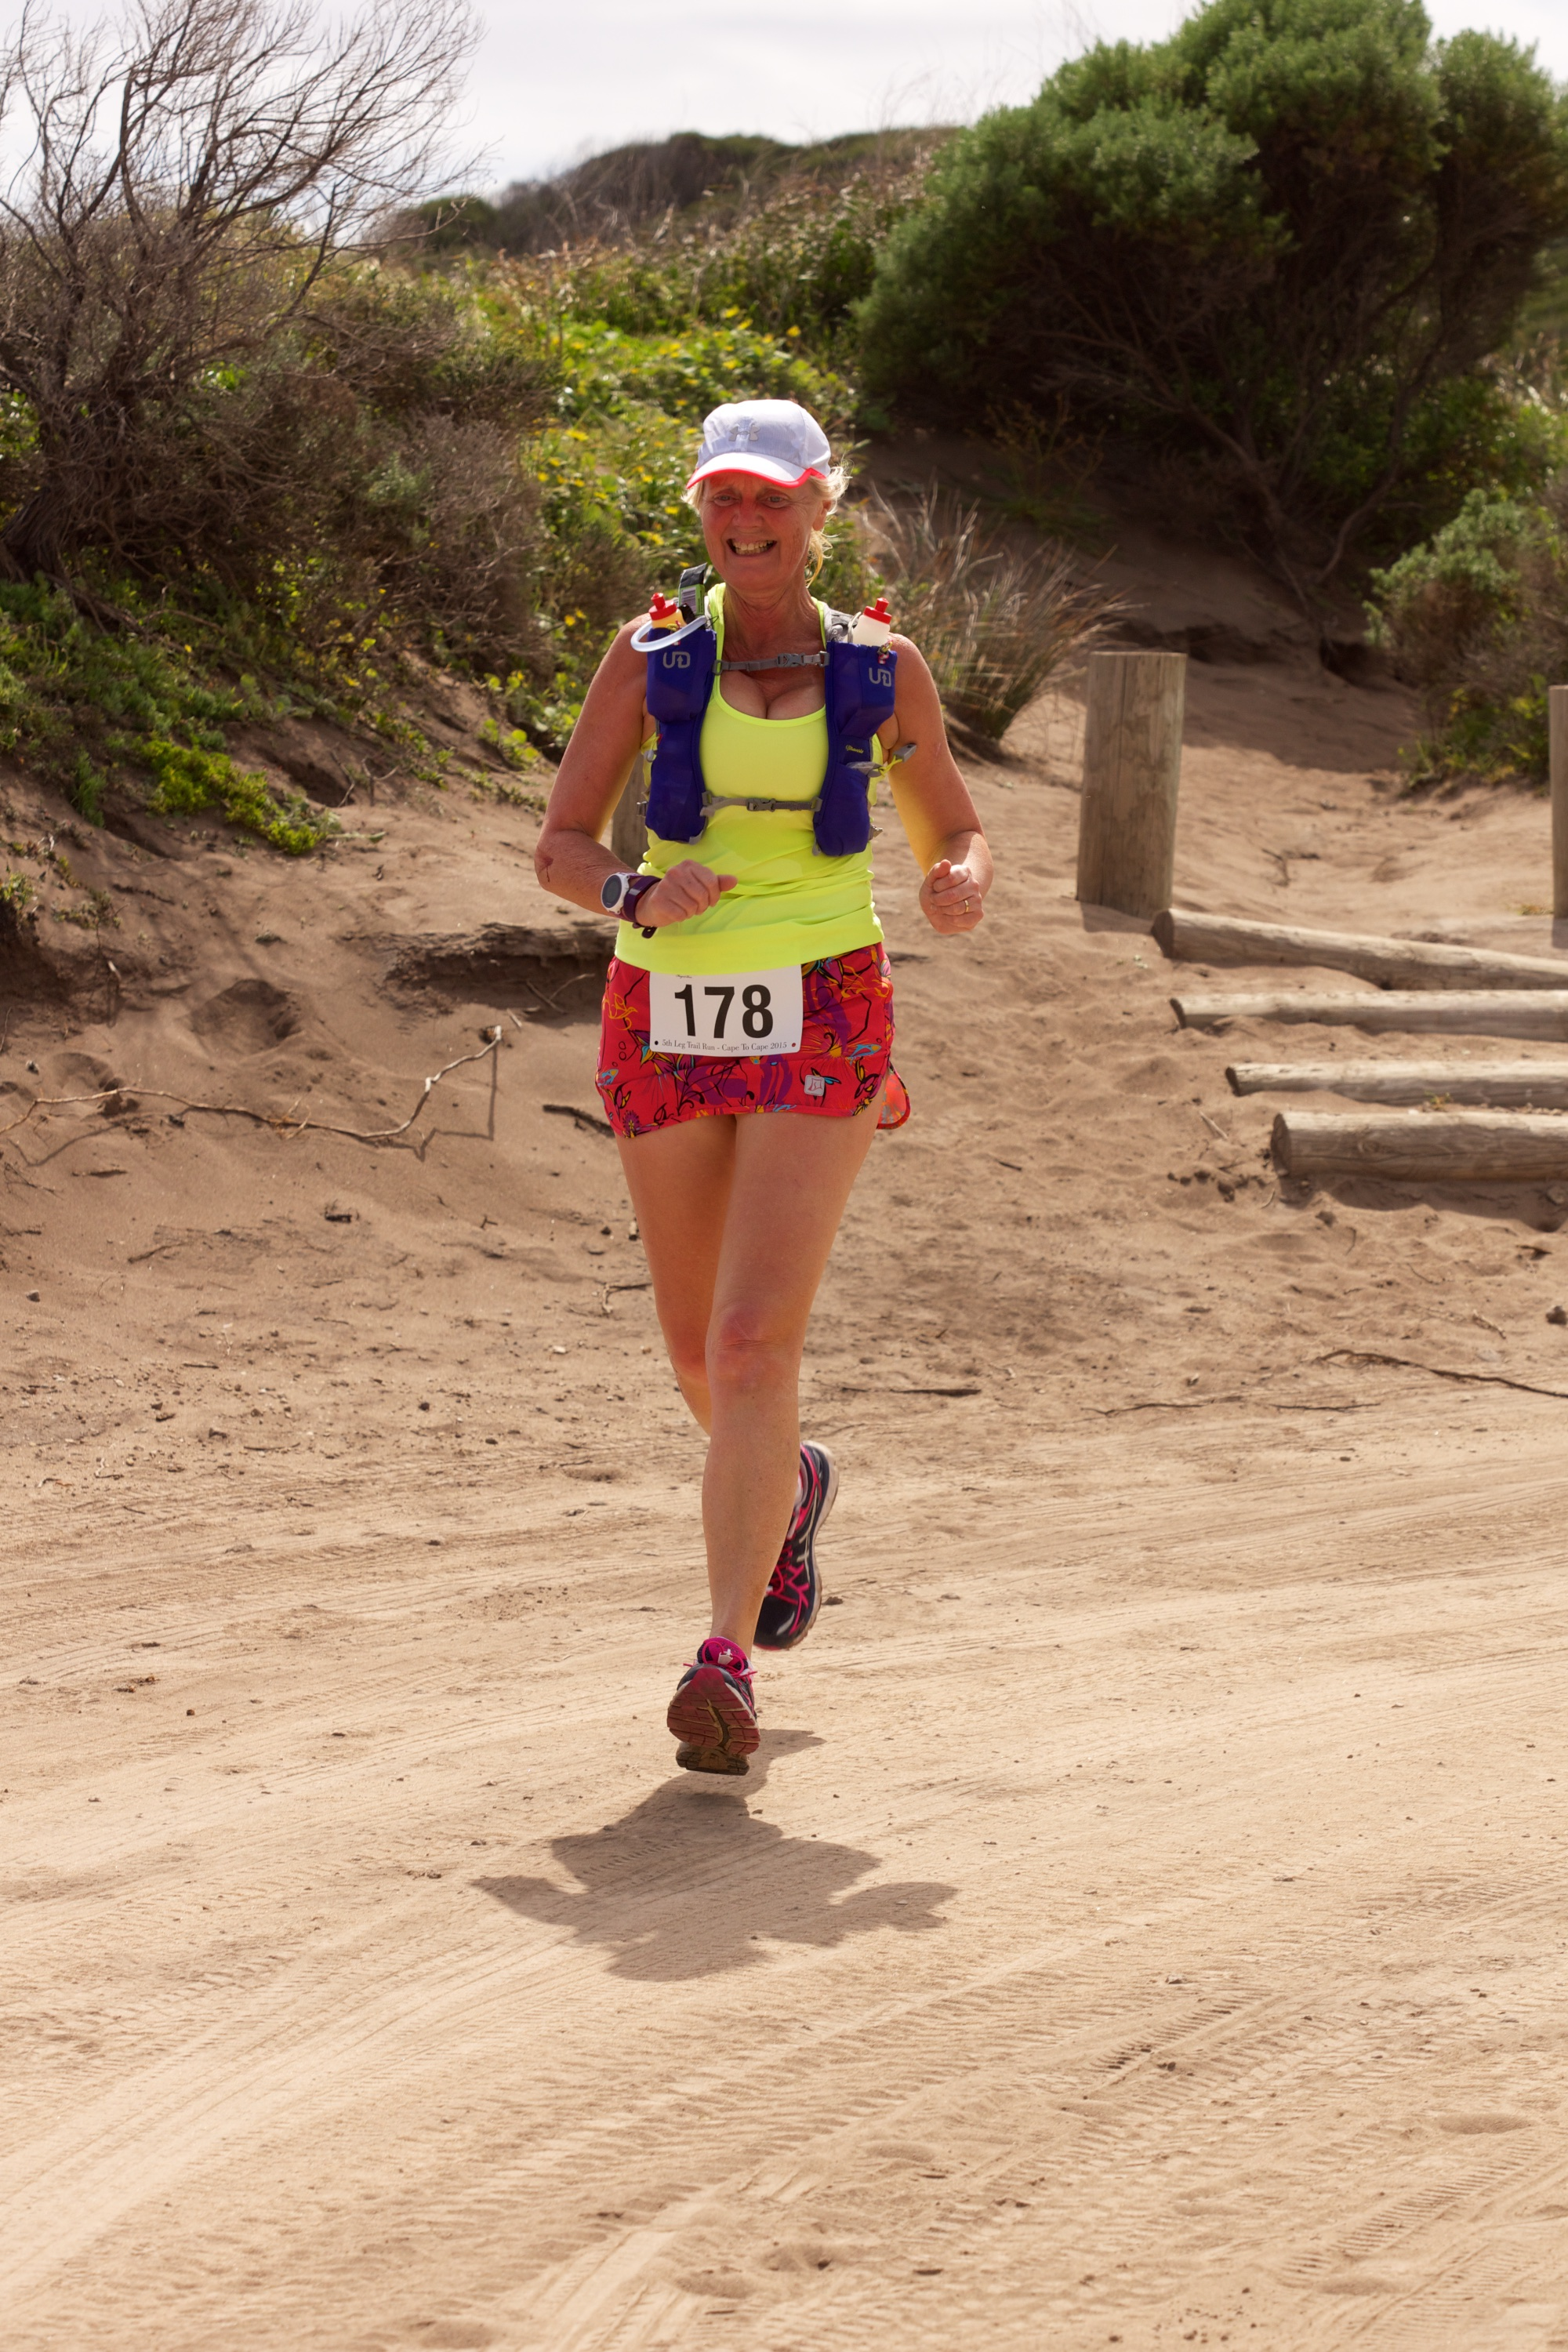 Photo of Caroline during Devil's Lair 5th Leg Trail Run (half marathon distance) in September 2015